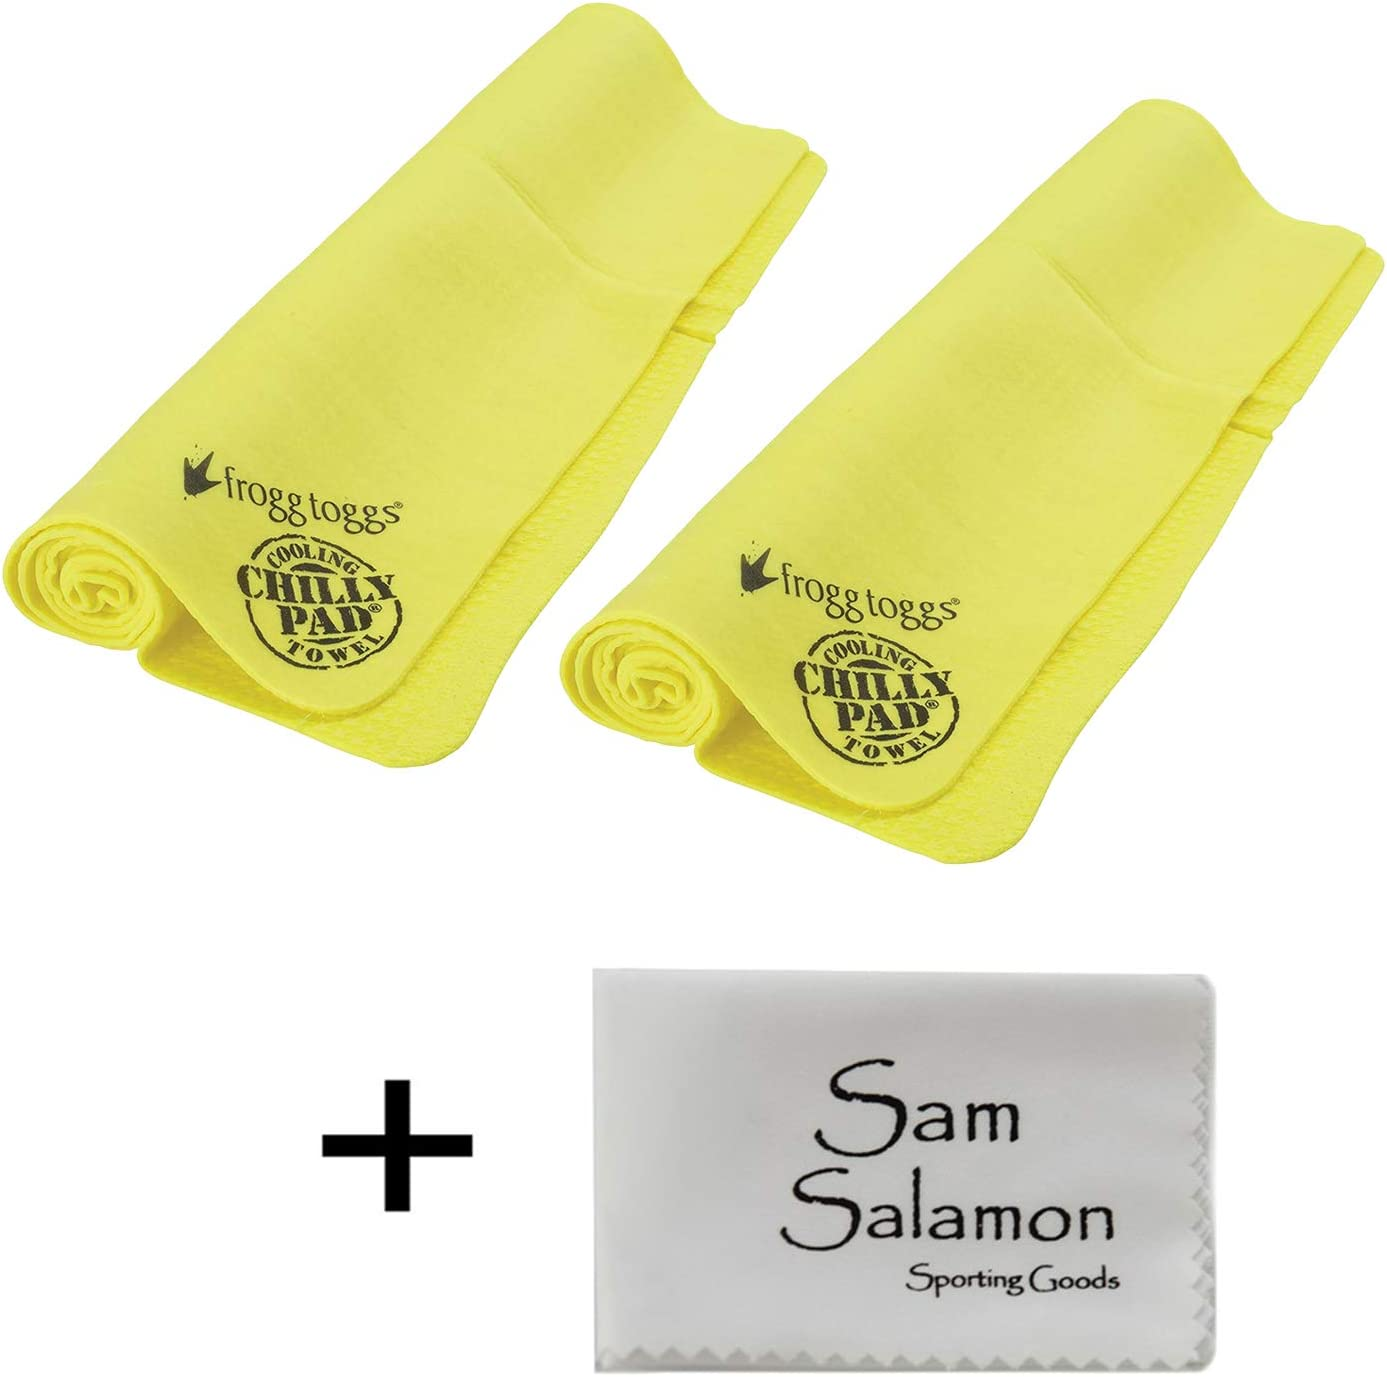 FROGG TOGGS Chilly Pad Cooling Towel (2 Pack) w/Micro Sam Salamon Cloth